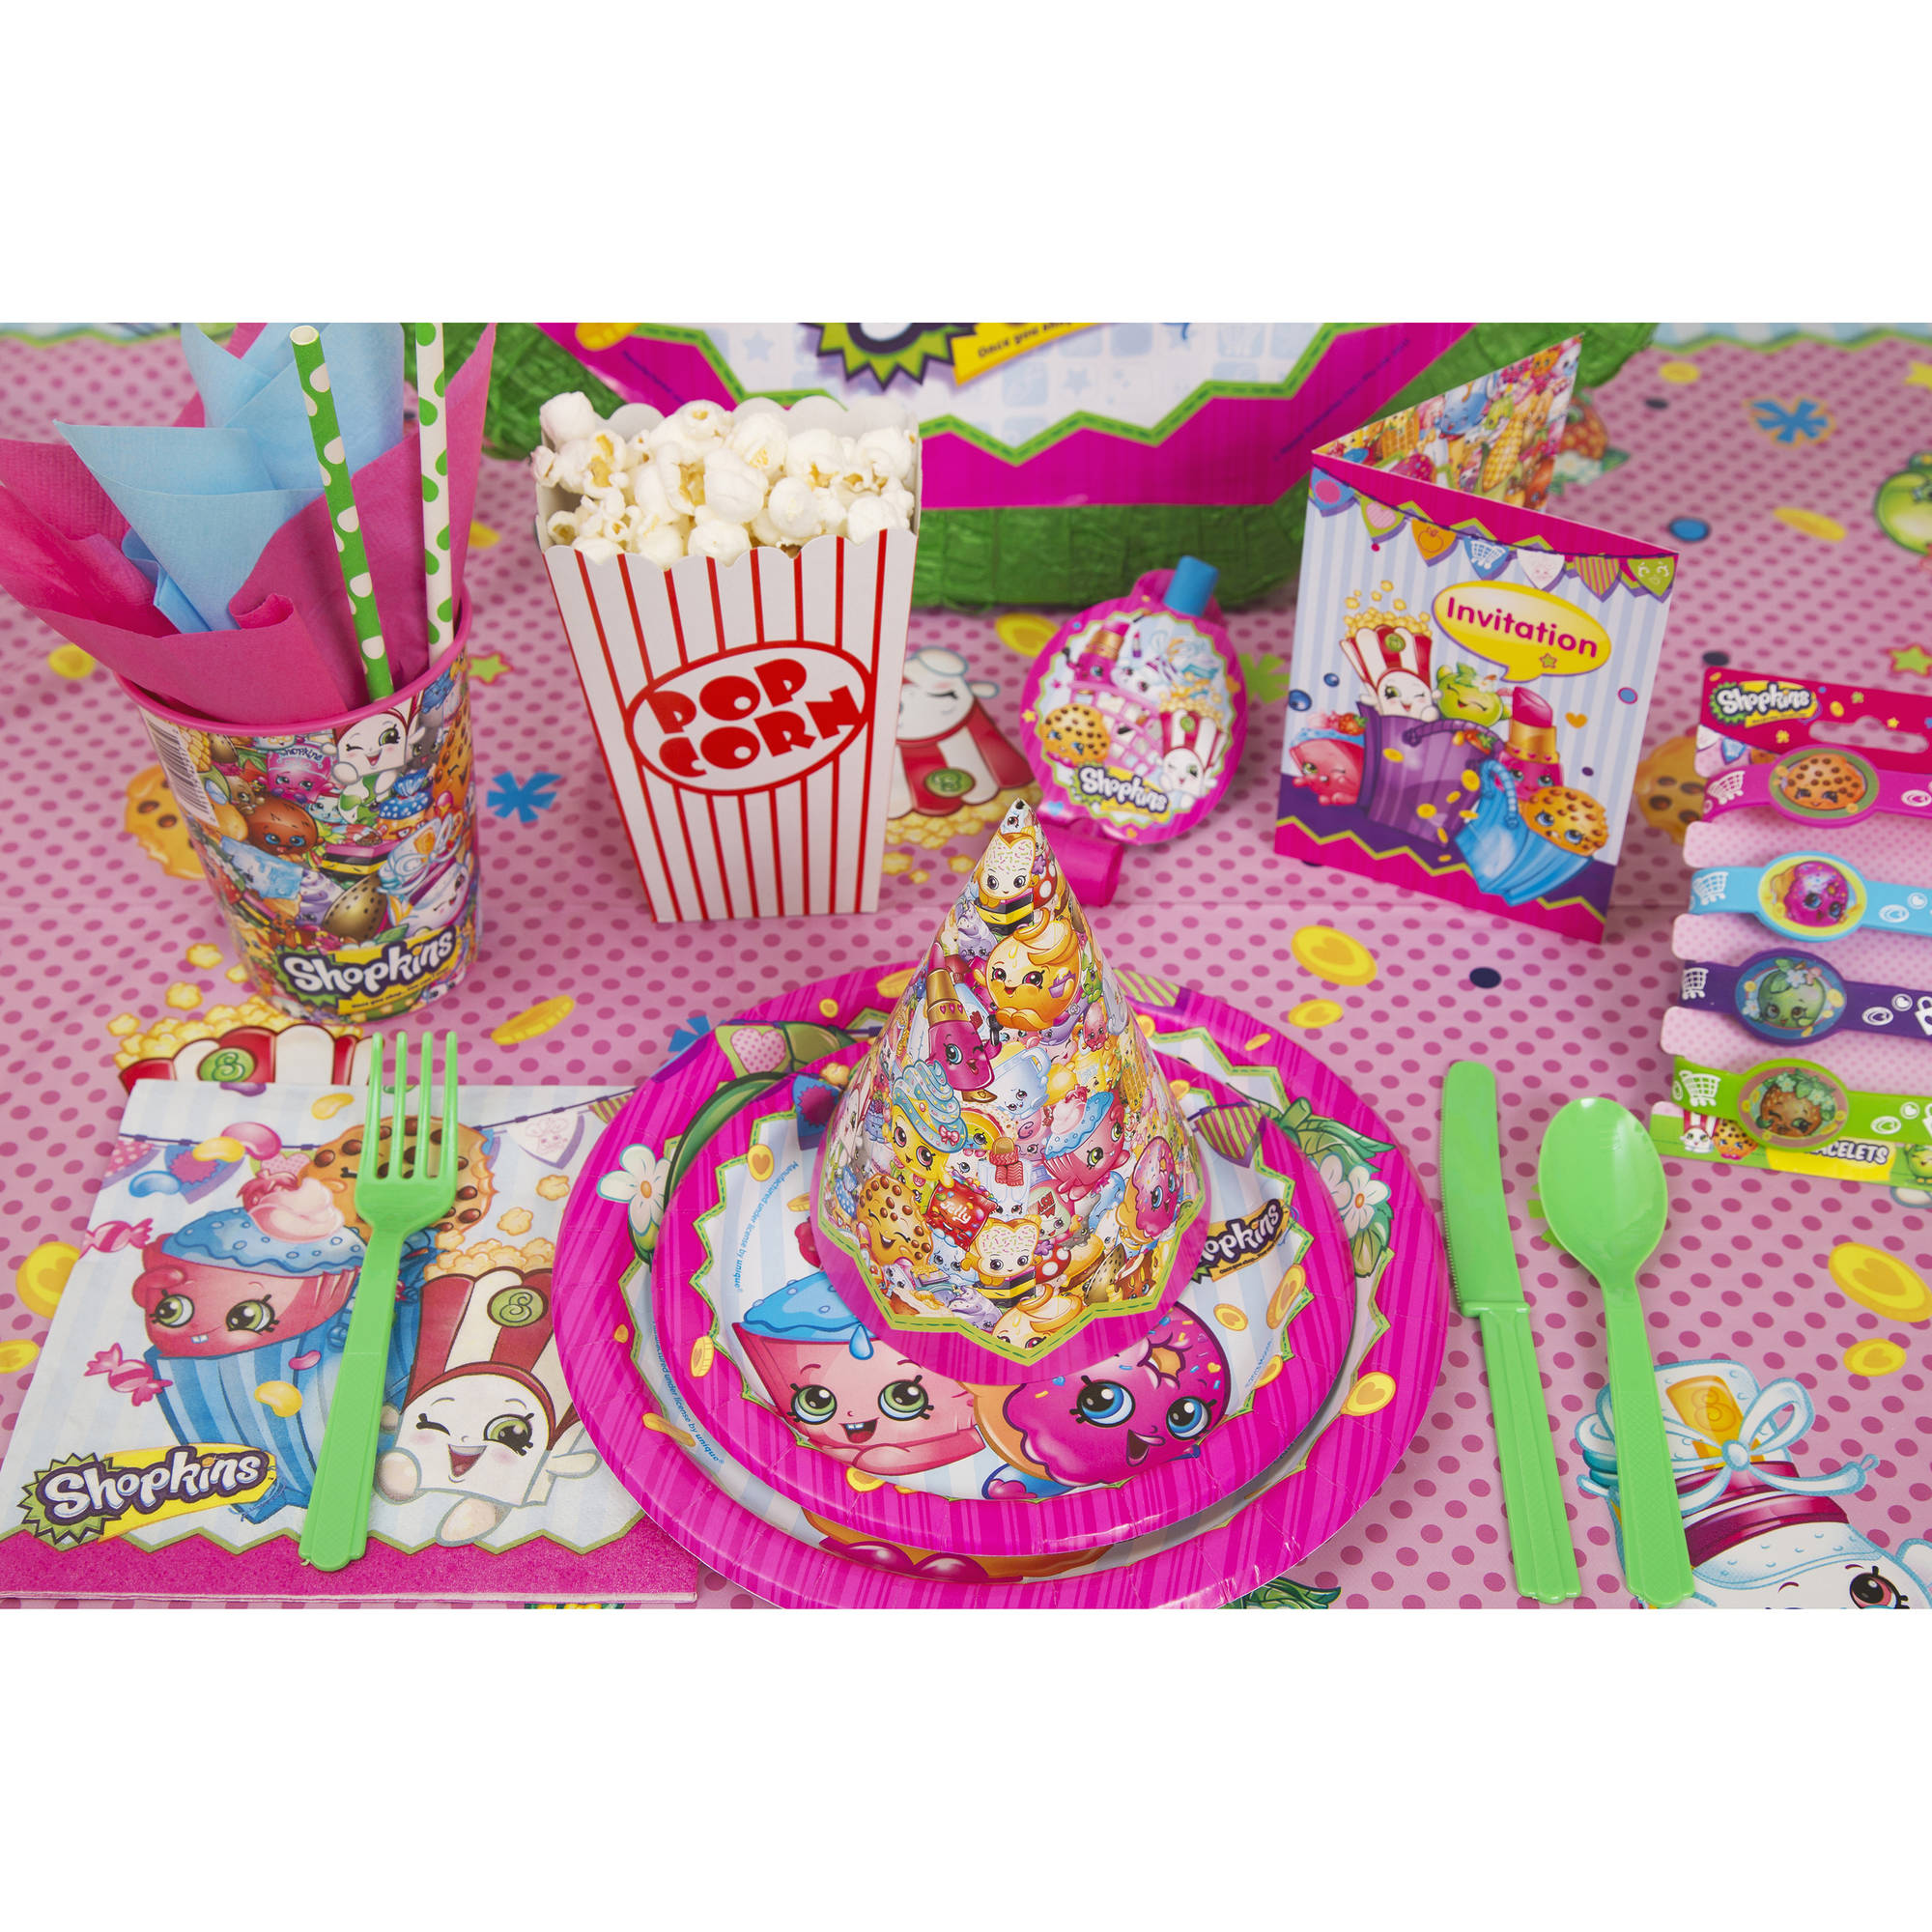 Plastic shopkins table cover 84 x 54 walmart filmwisefo Images